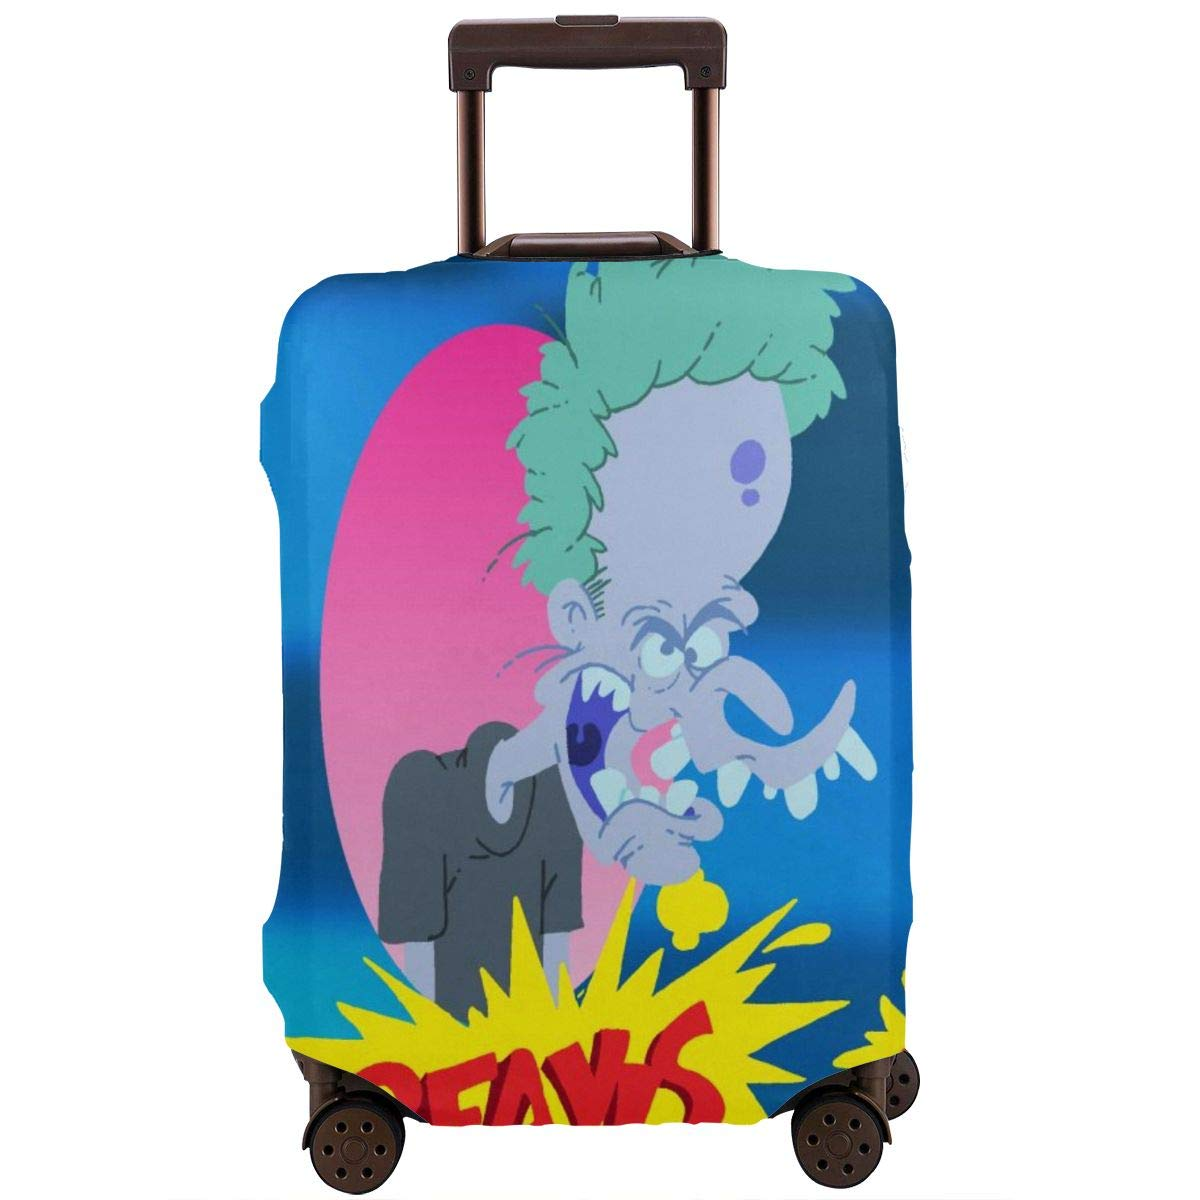 Travel Luggage Cover Cartoon Beavis Butthead Travel Luggage Cover Suitcase Protector Fits 26-28 Inch Washable Baggage Covers